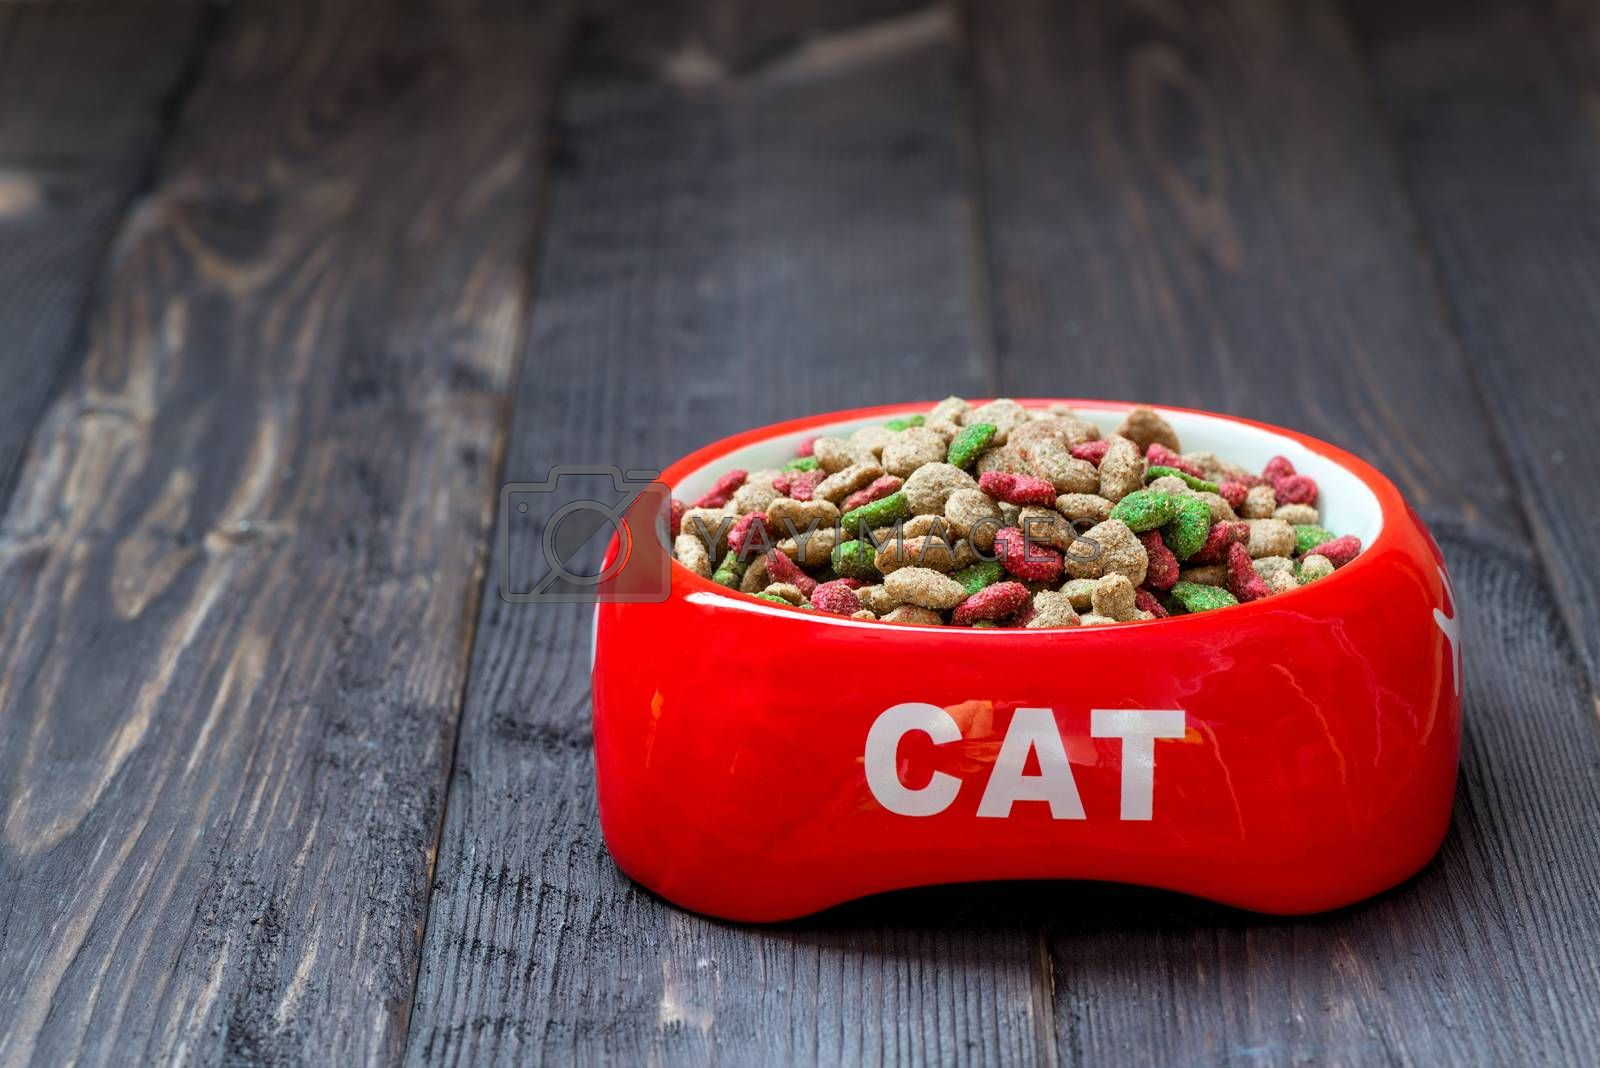 on a wooden floor a red bowl for a cat with dry food